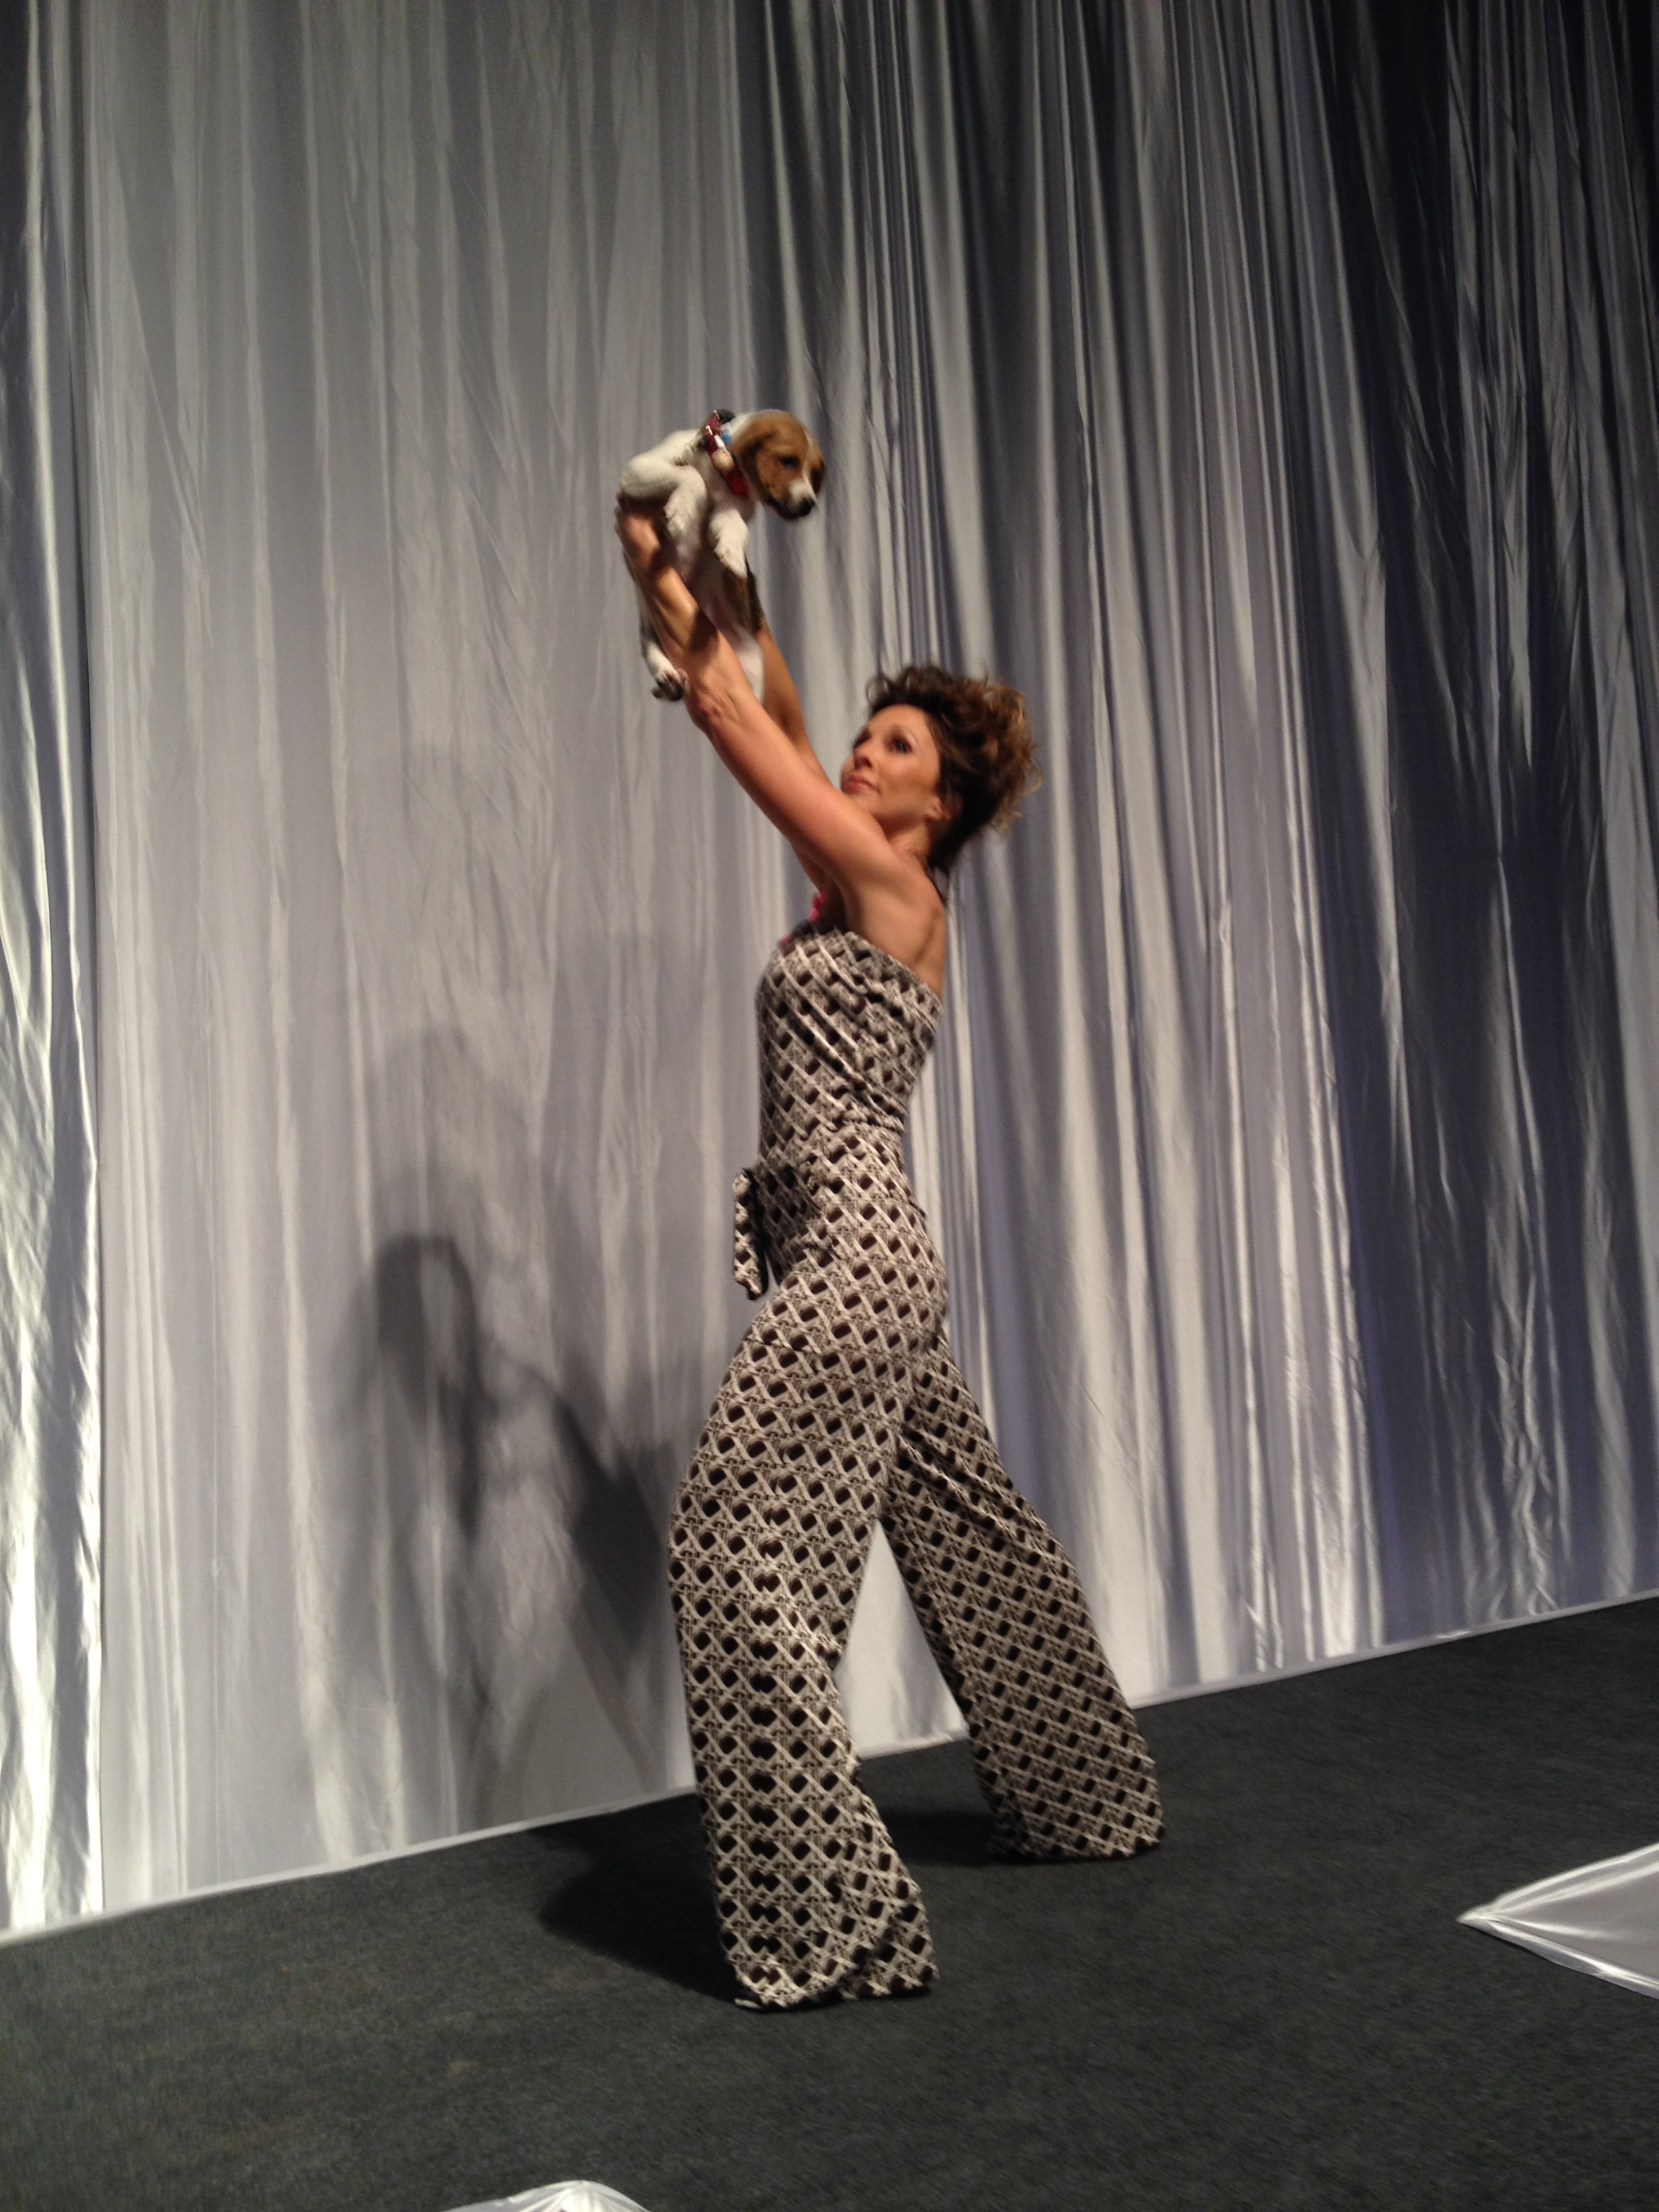 Doggies on the Catwalk! Model and host of Atlanta & Company / 11 Alive, Christine Pullara has a triumphant runway moment with an adorable puppy! Watch highlights video  HERE !